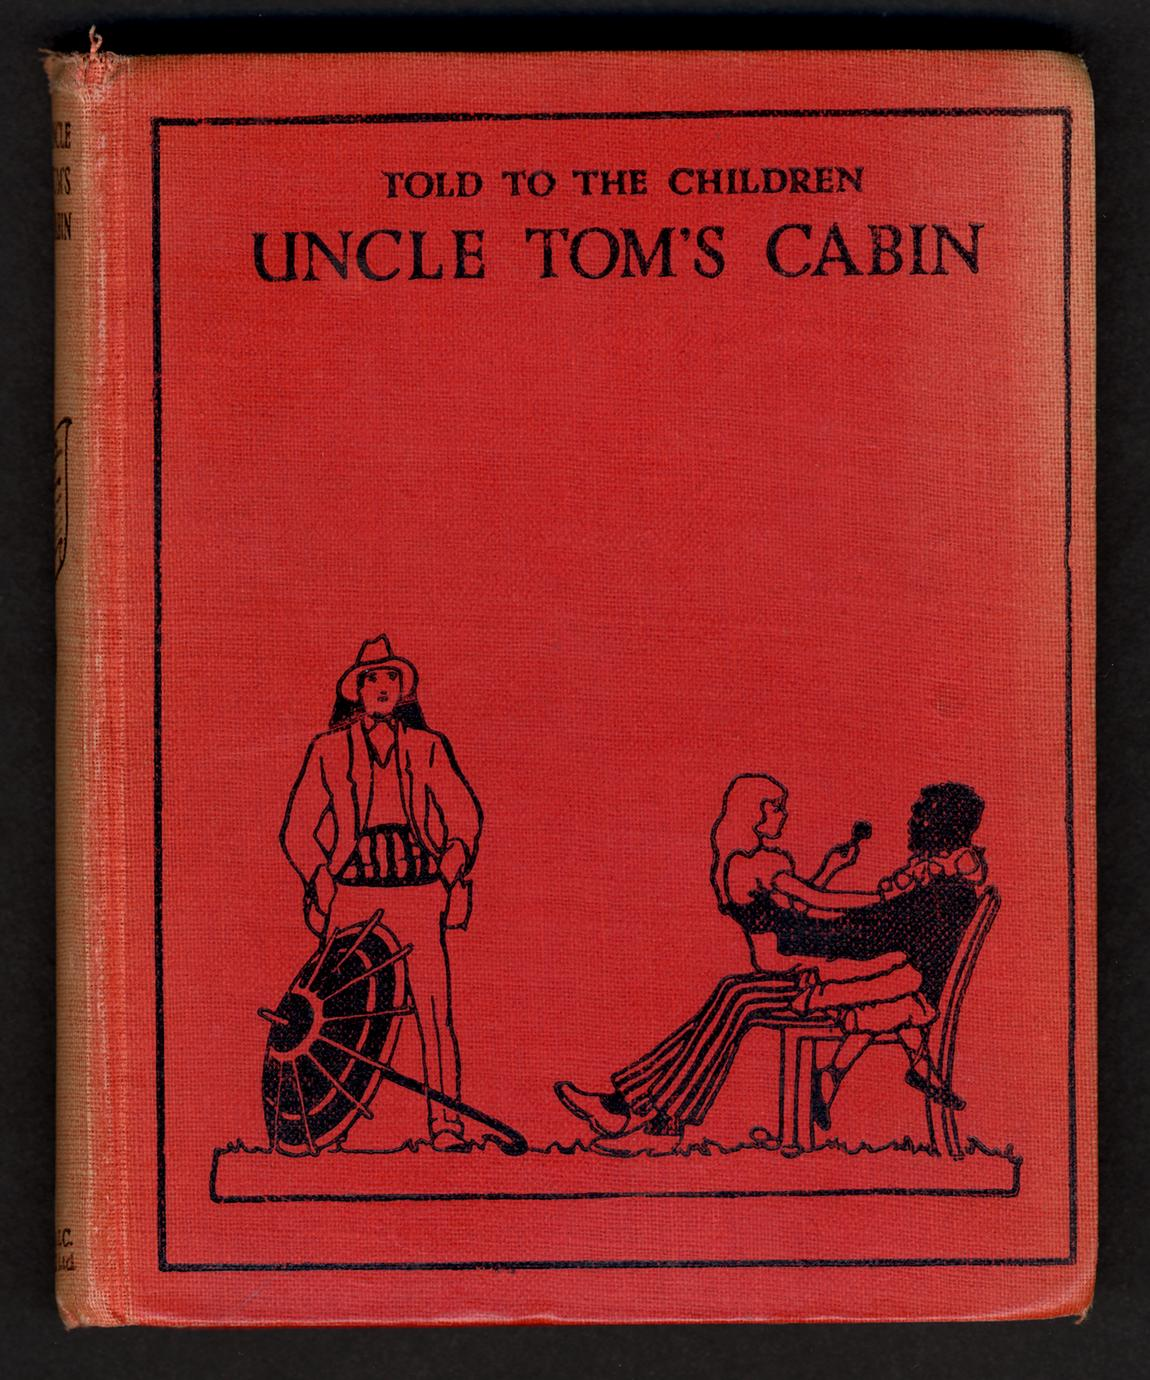 Uncle Tom's cabin : told to the children (1 of 2)